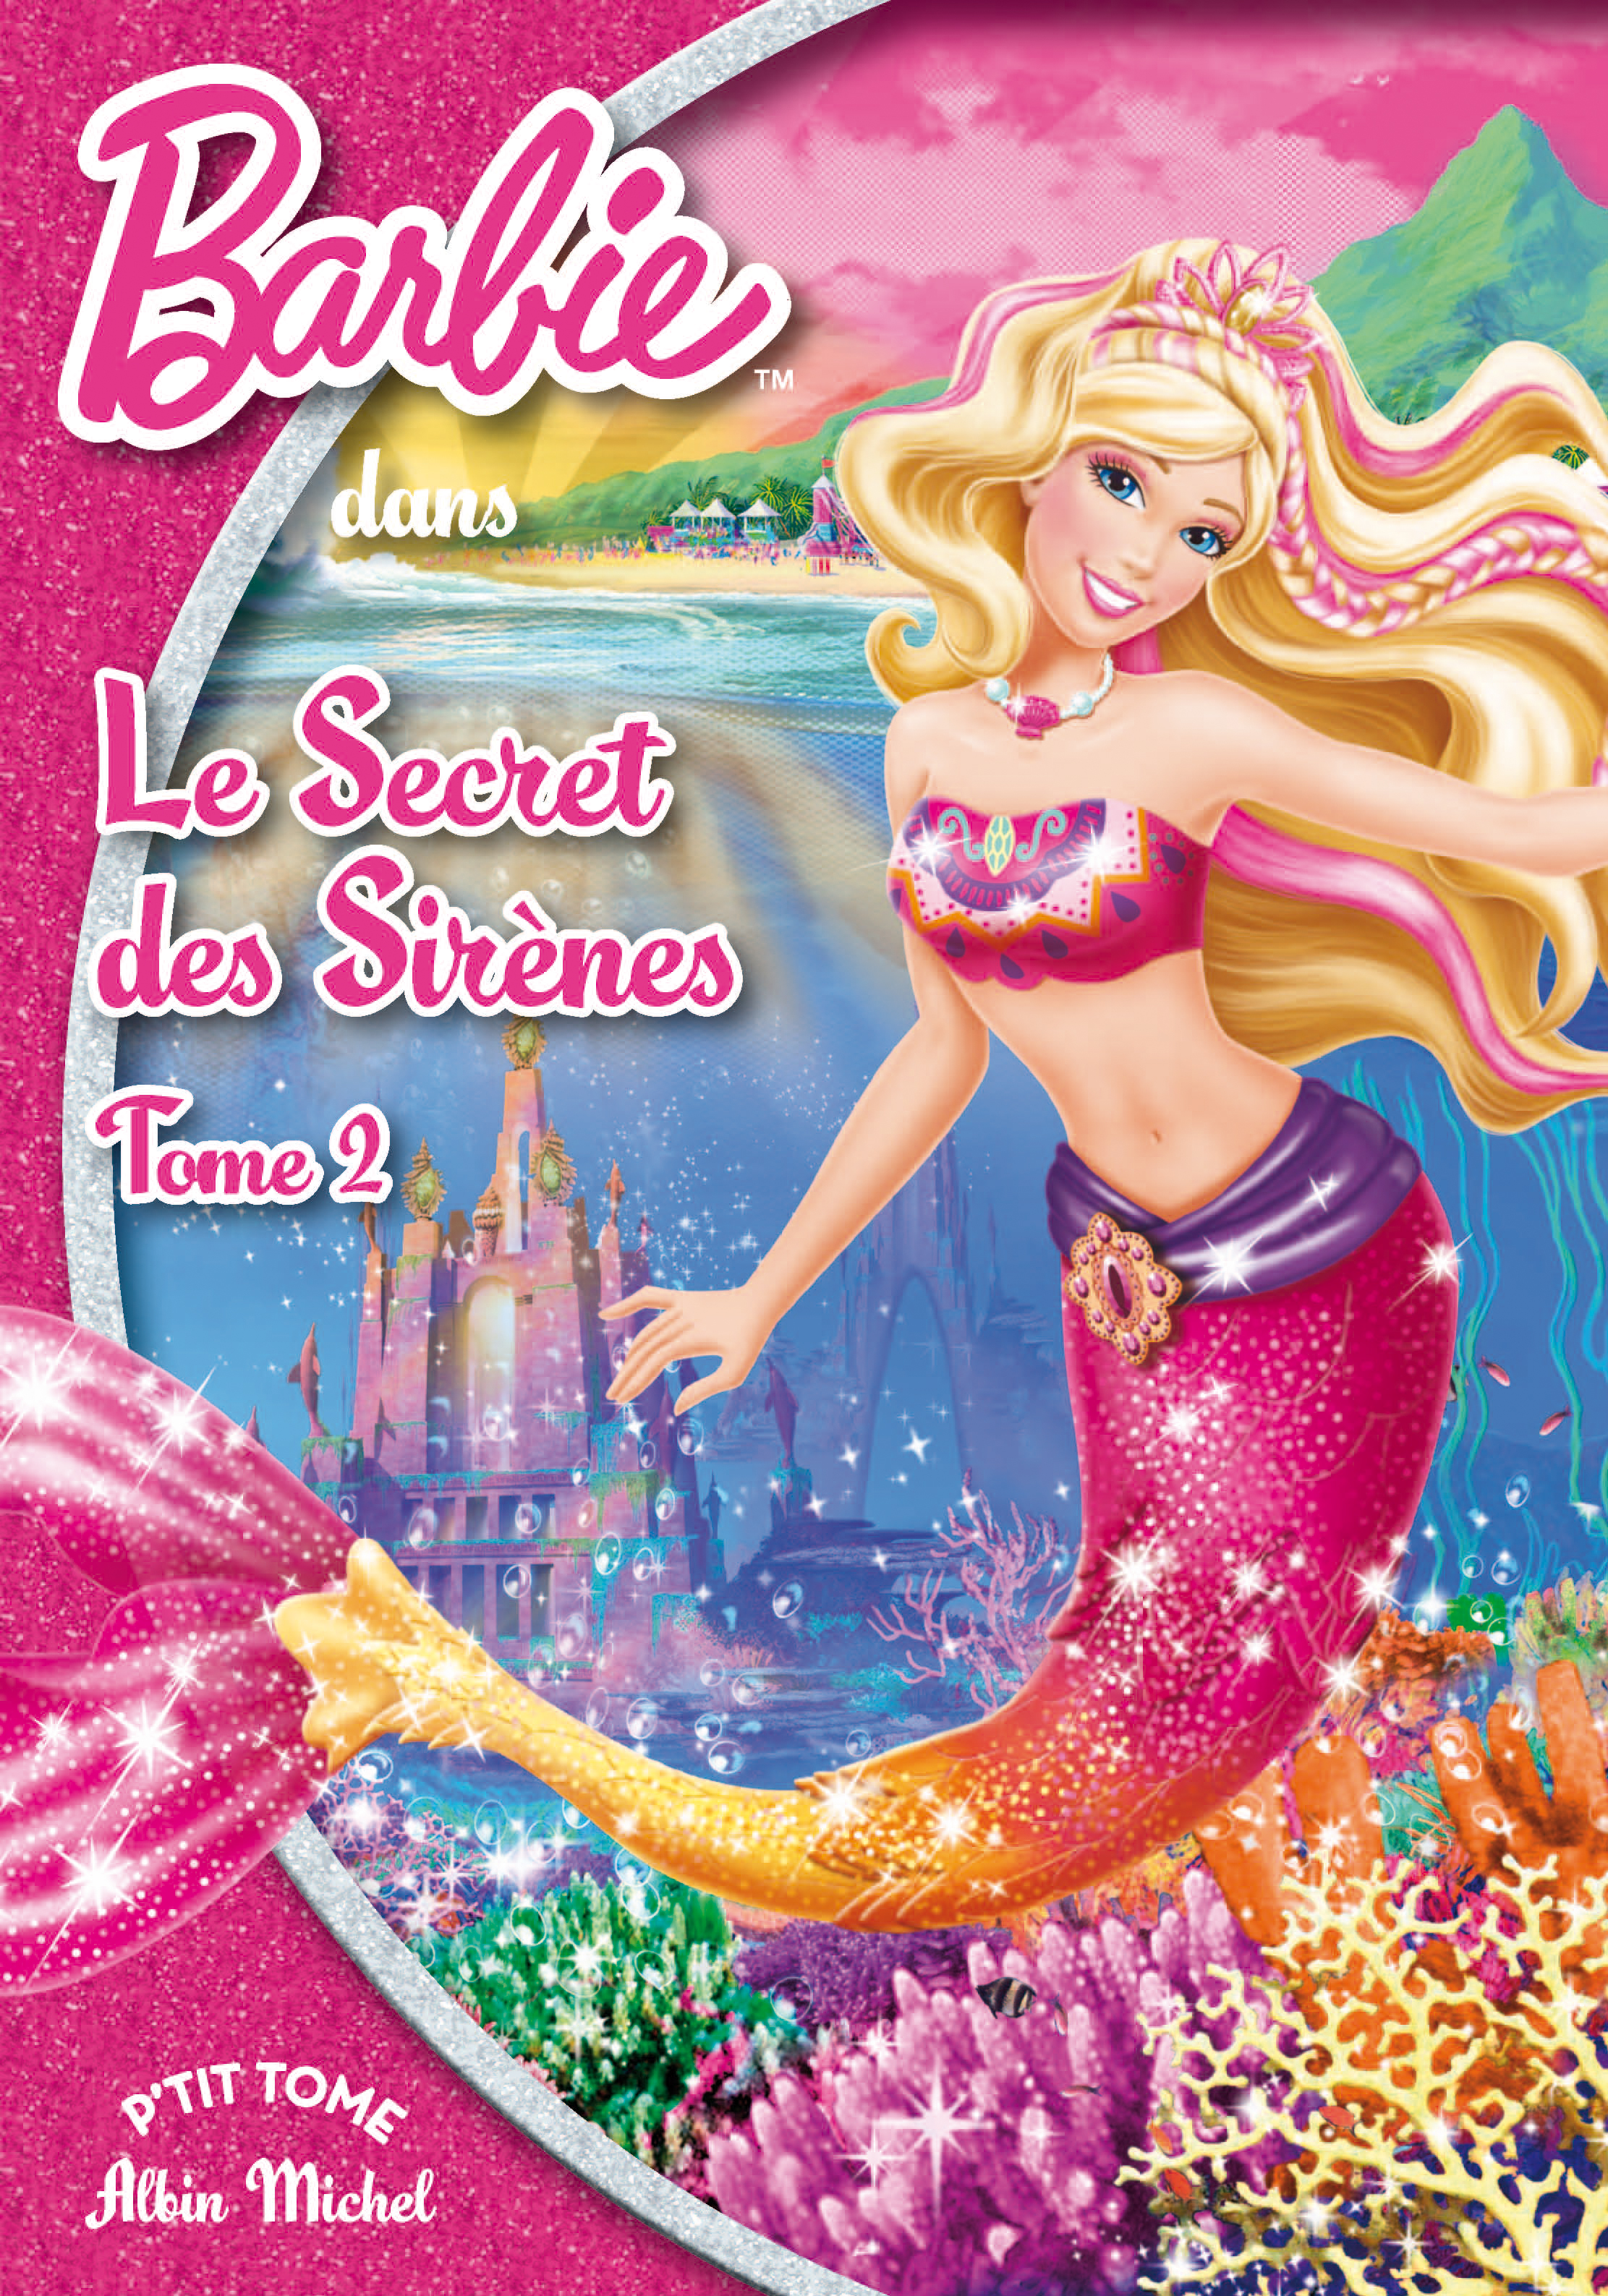 Barbie et le secret des sir nes 2 film cin sanctuary - Barbi sirene 2 film ...